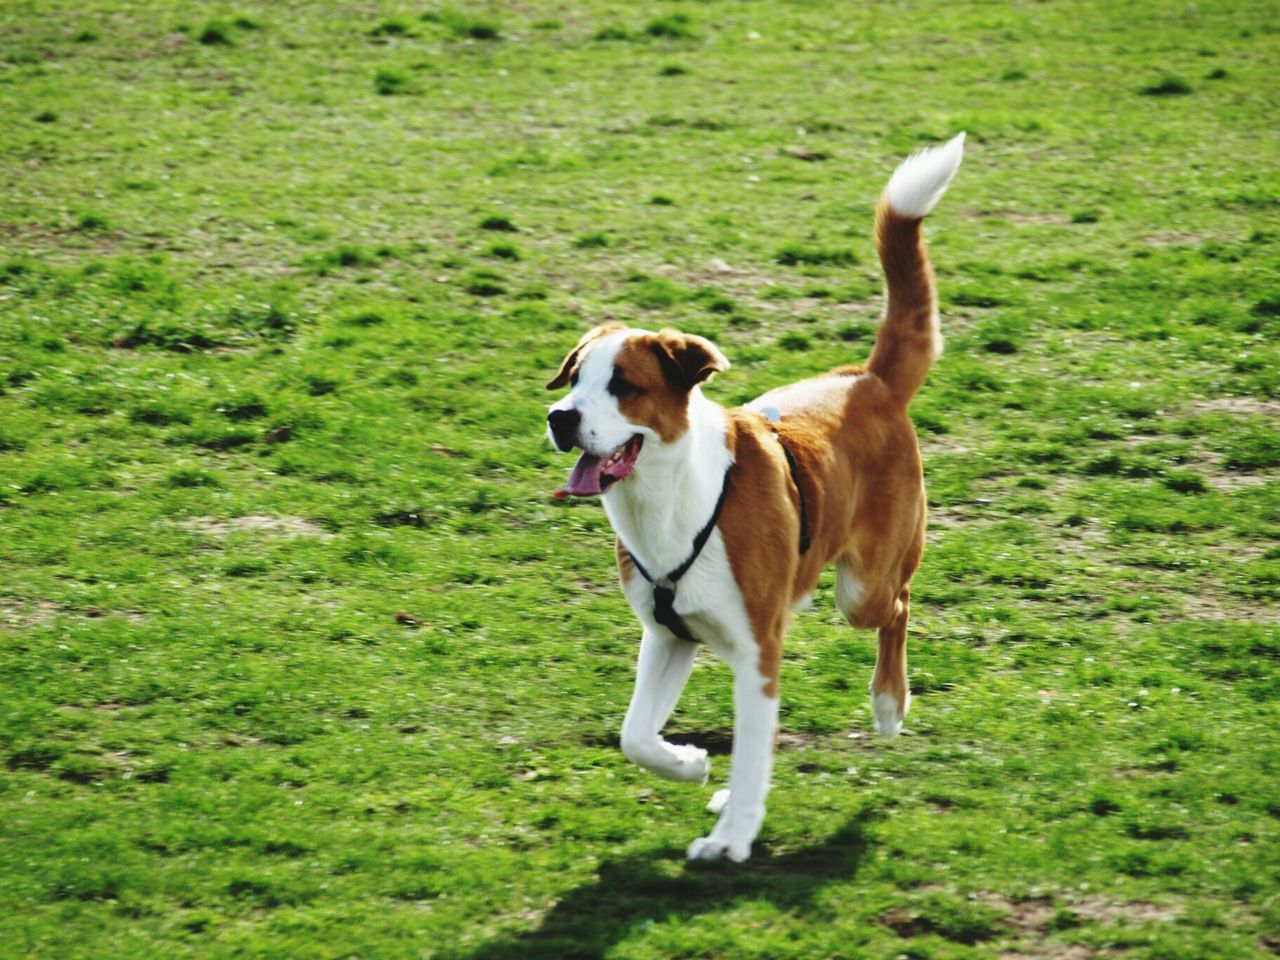 Hello World Doggy Tempelhofer Feld I Love My Dog Dog Training Emil Star Sun Taking Photos